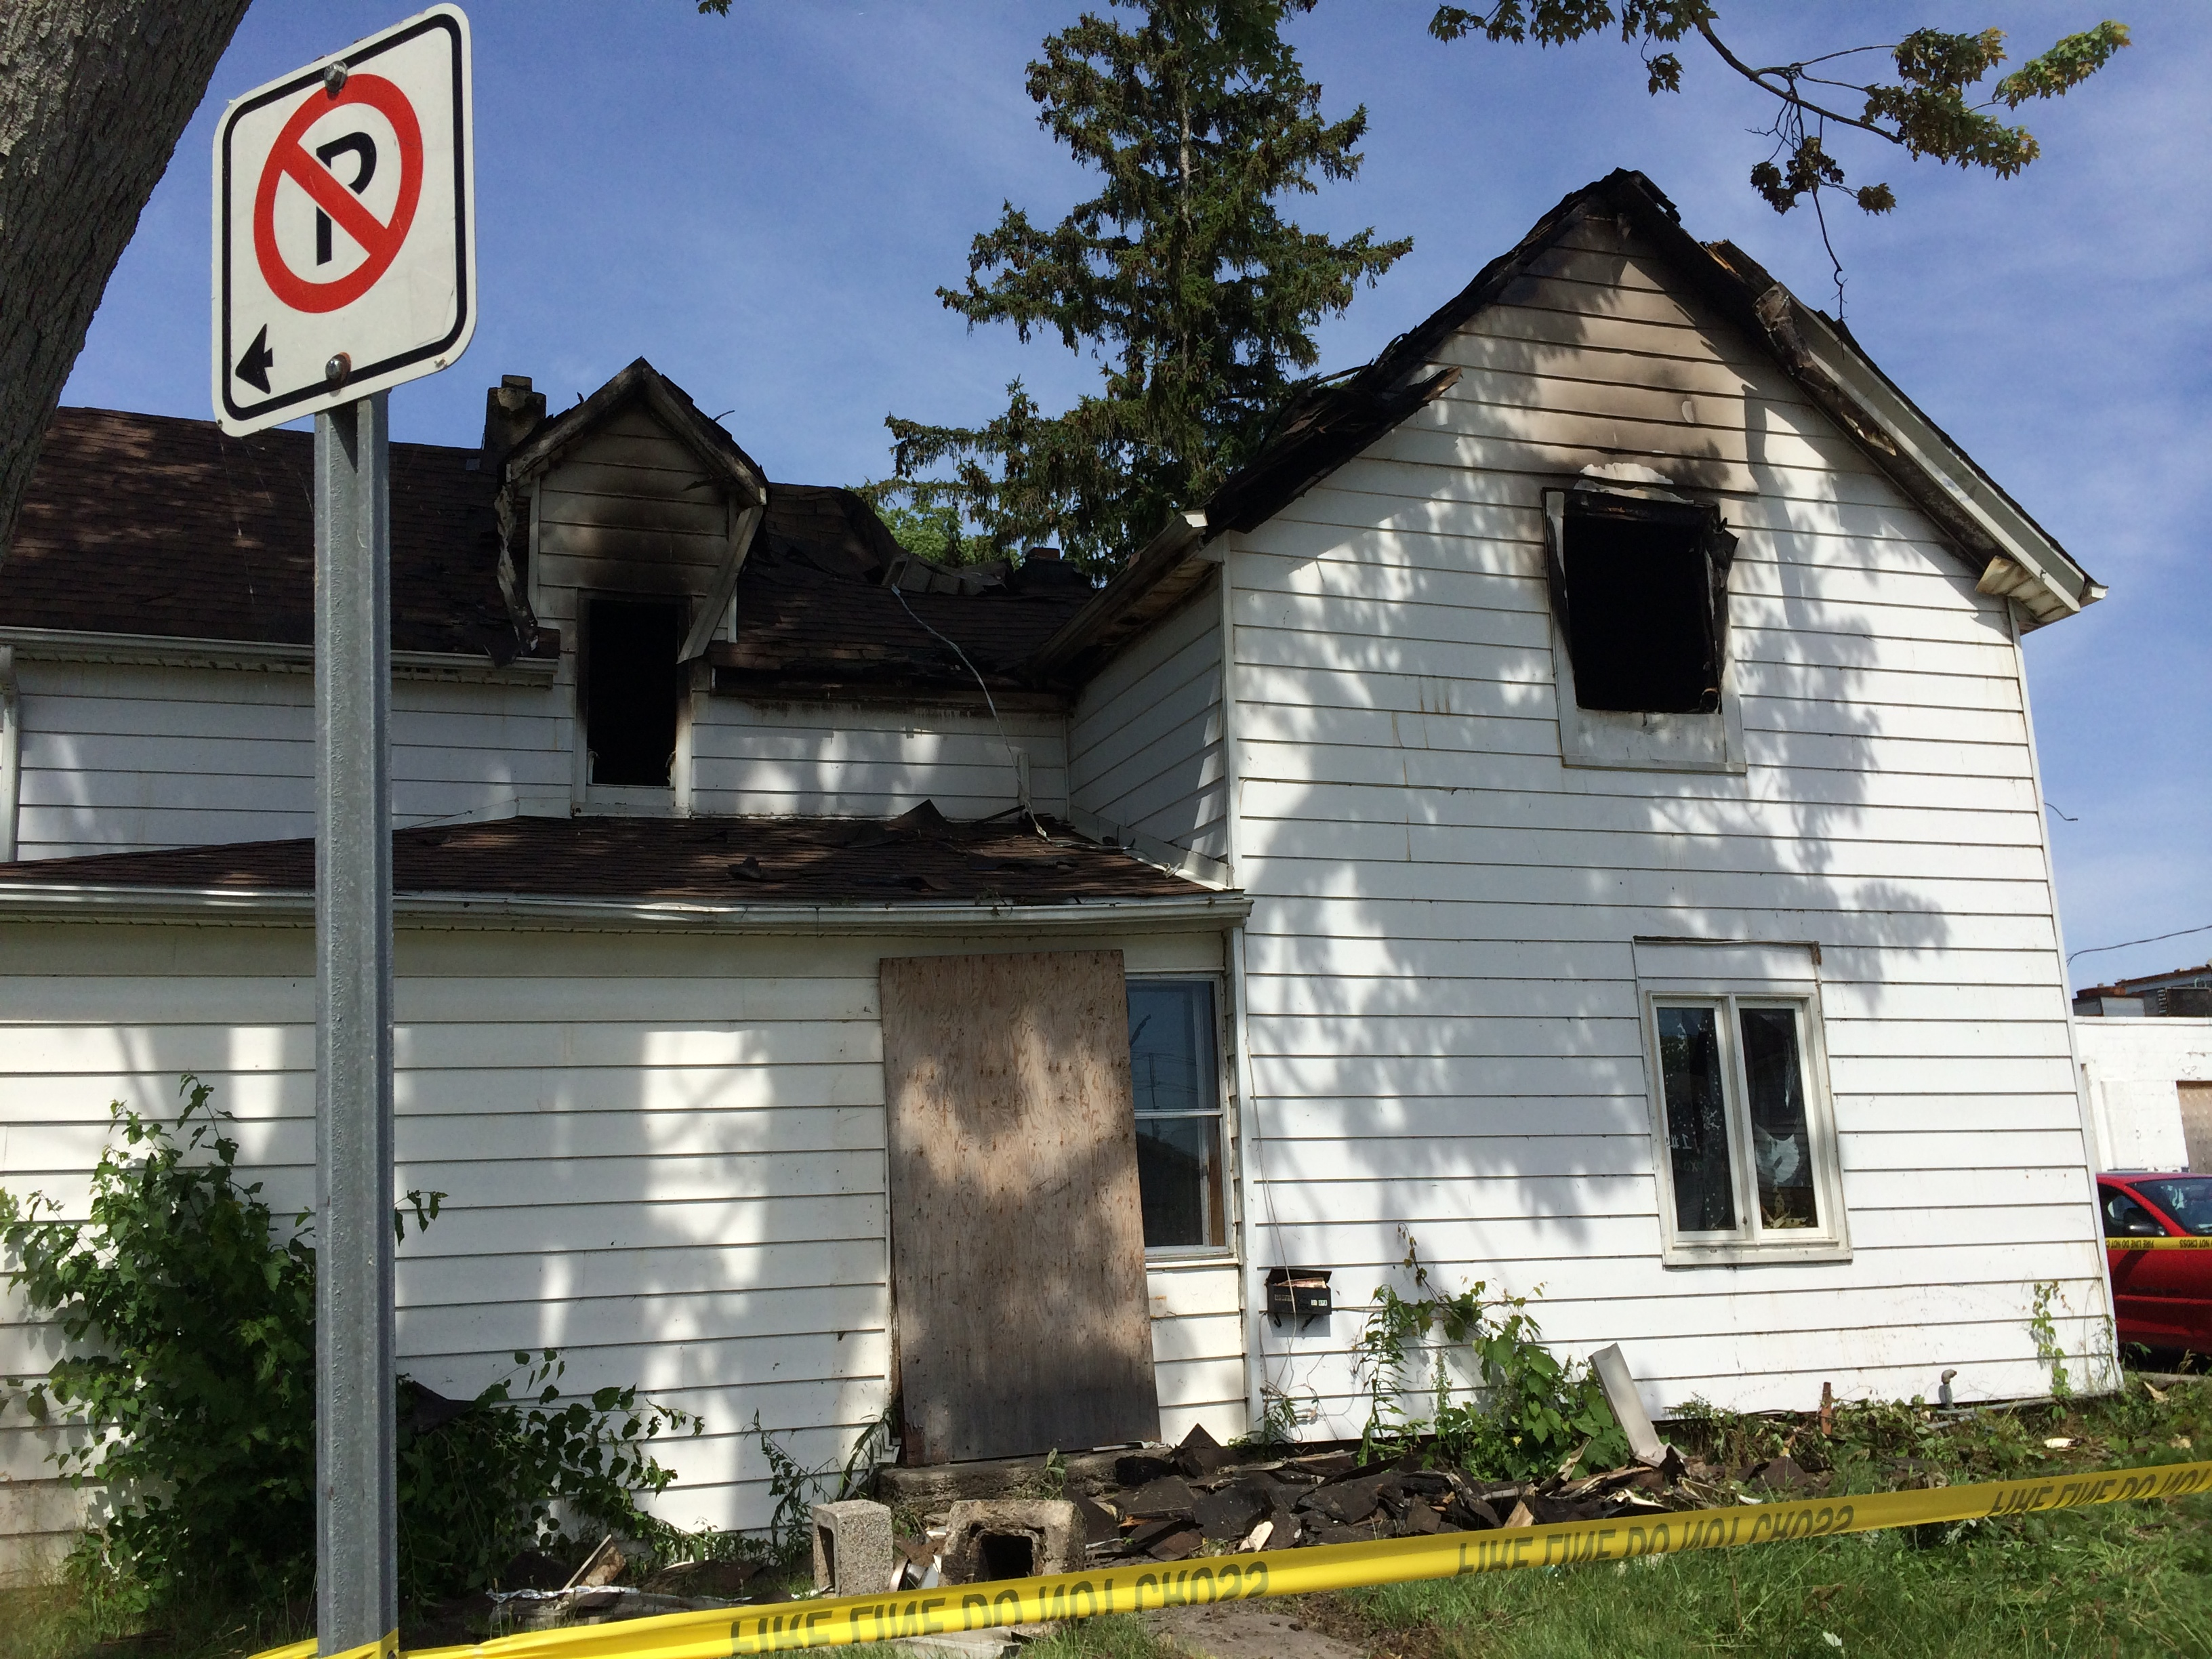 Burnt out home on Victoria St. in Leamington on July 5, 2014. (Photo by Ricardo Veneza)